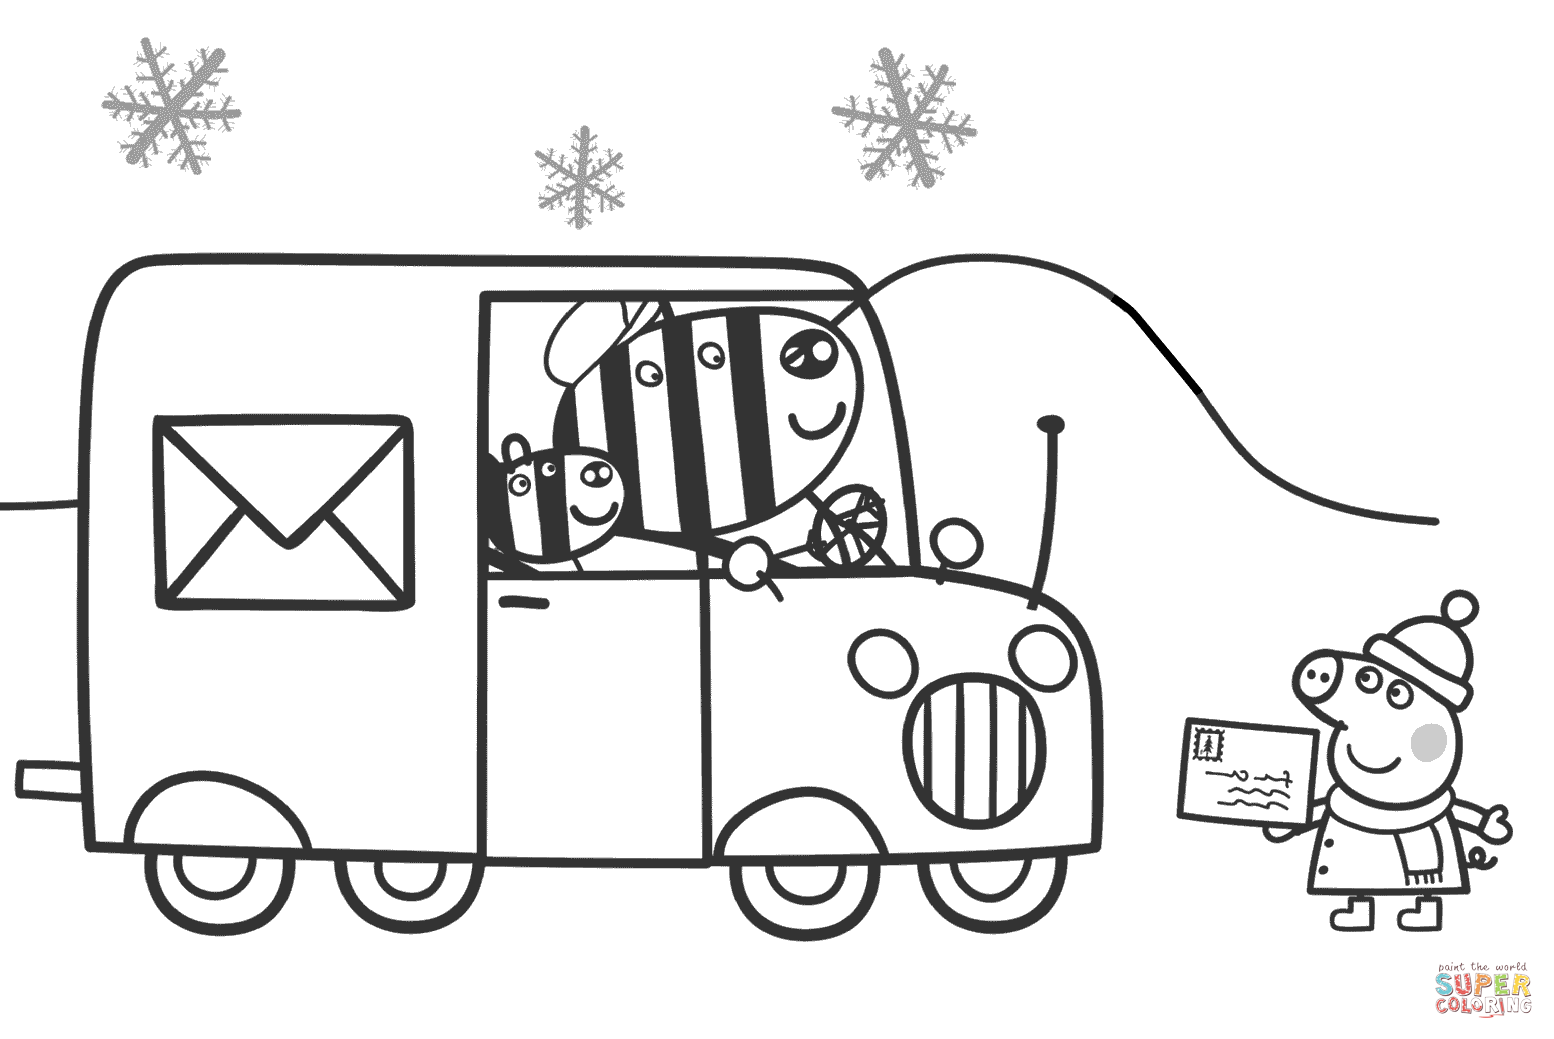 Peppa Waits For Zuzu And Zaza To Send A Xmas Card Super Coloring Abc Coloring Peppa Pig Coloring Pages Coloring Pages